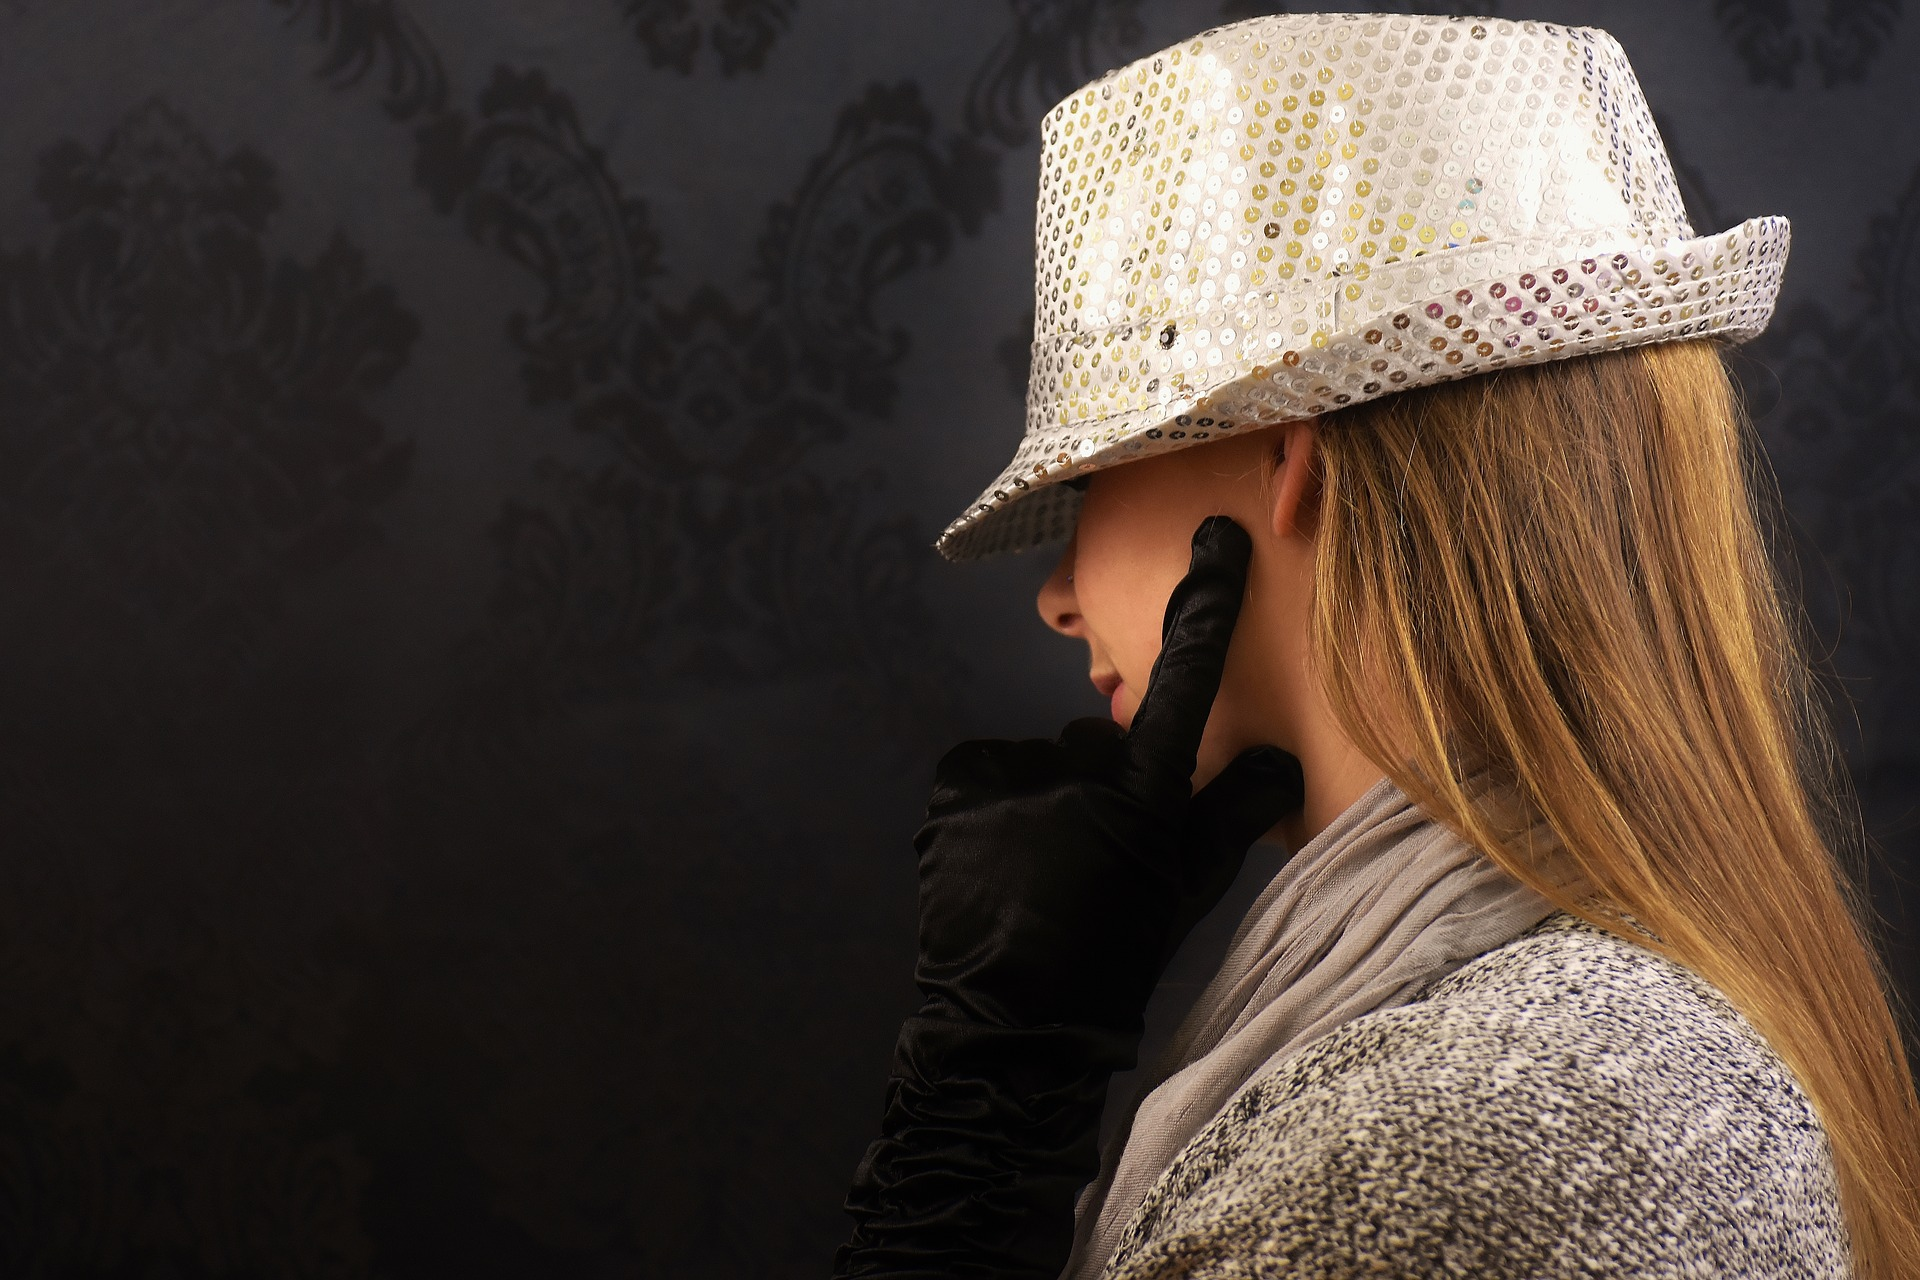 https://pixabay.com/photos/woman-hat-sequins-chic-gloves-2060059/